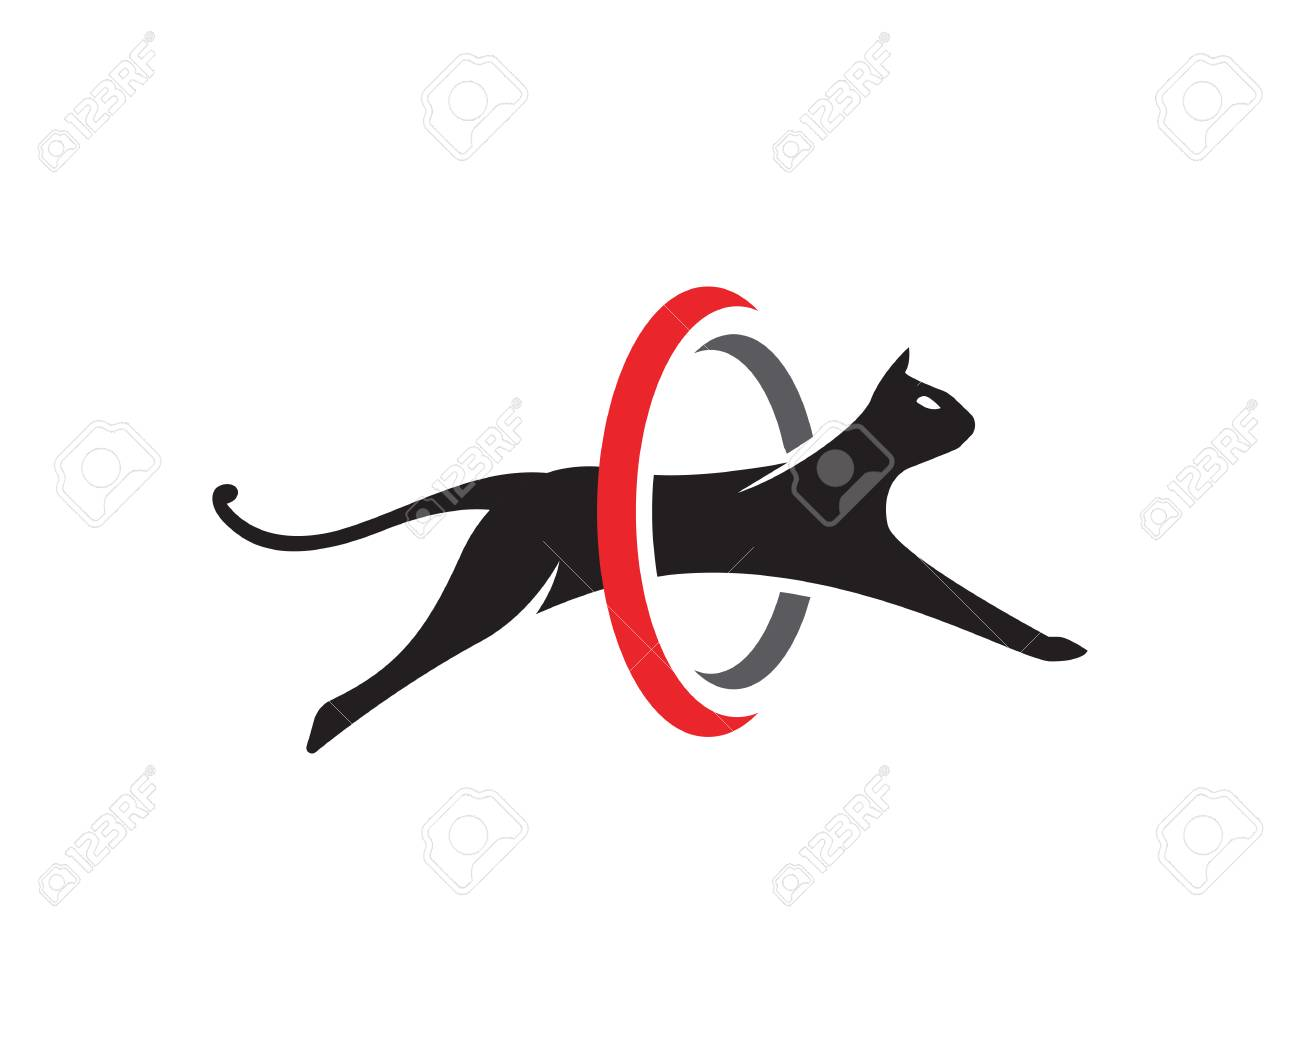 Cat Jumping On Circle Design Vector Illustration Template Royalty